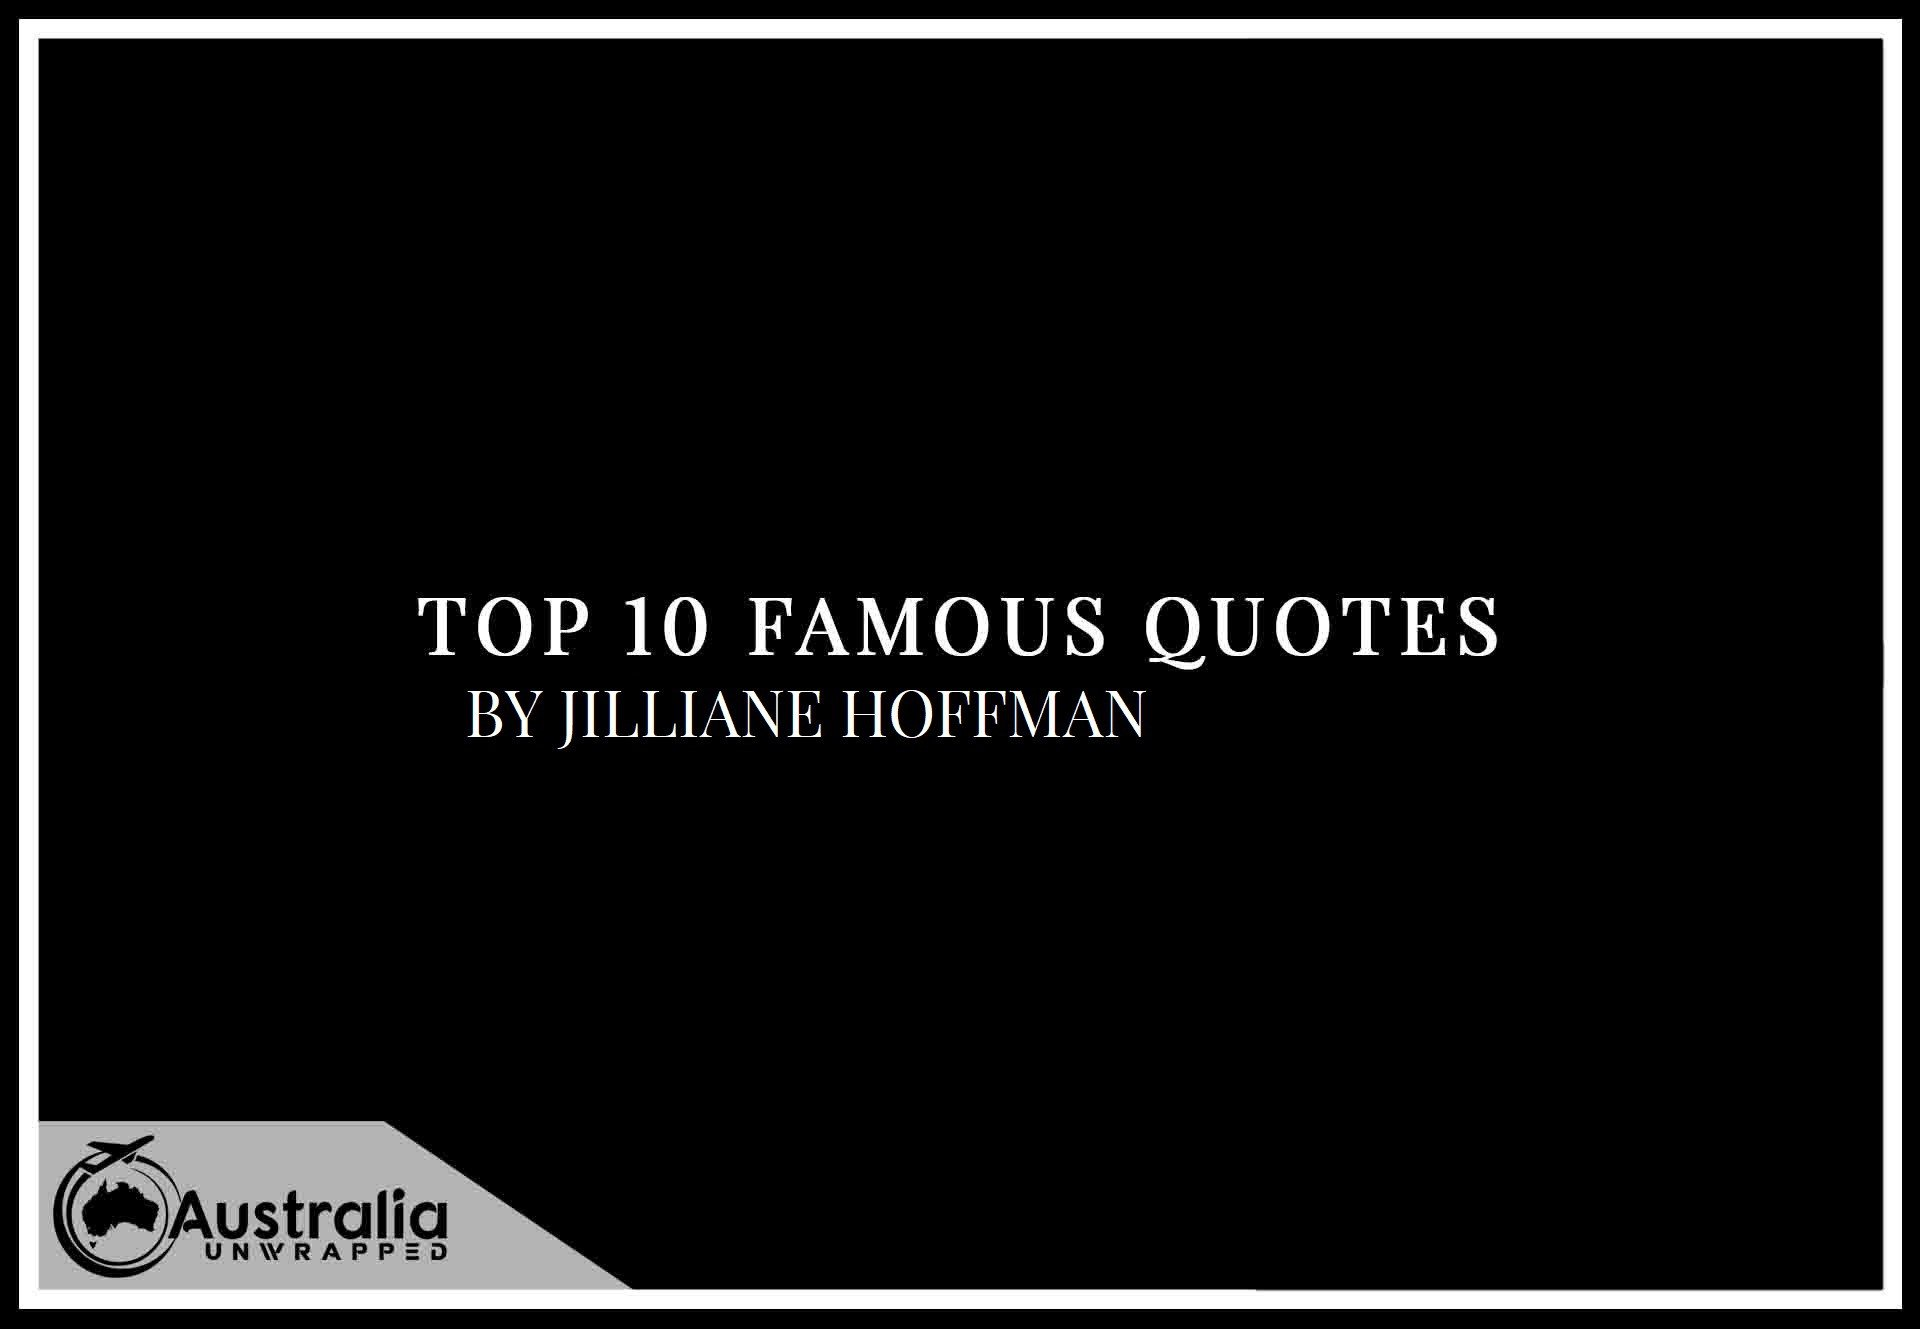 Top 10 Famous Quotes by Author Jilliane Hoffman